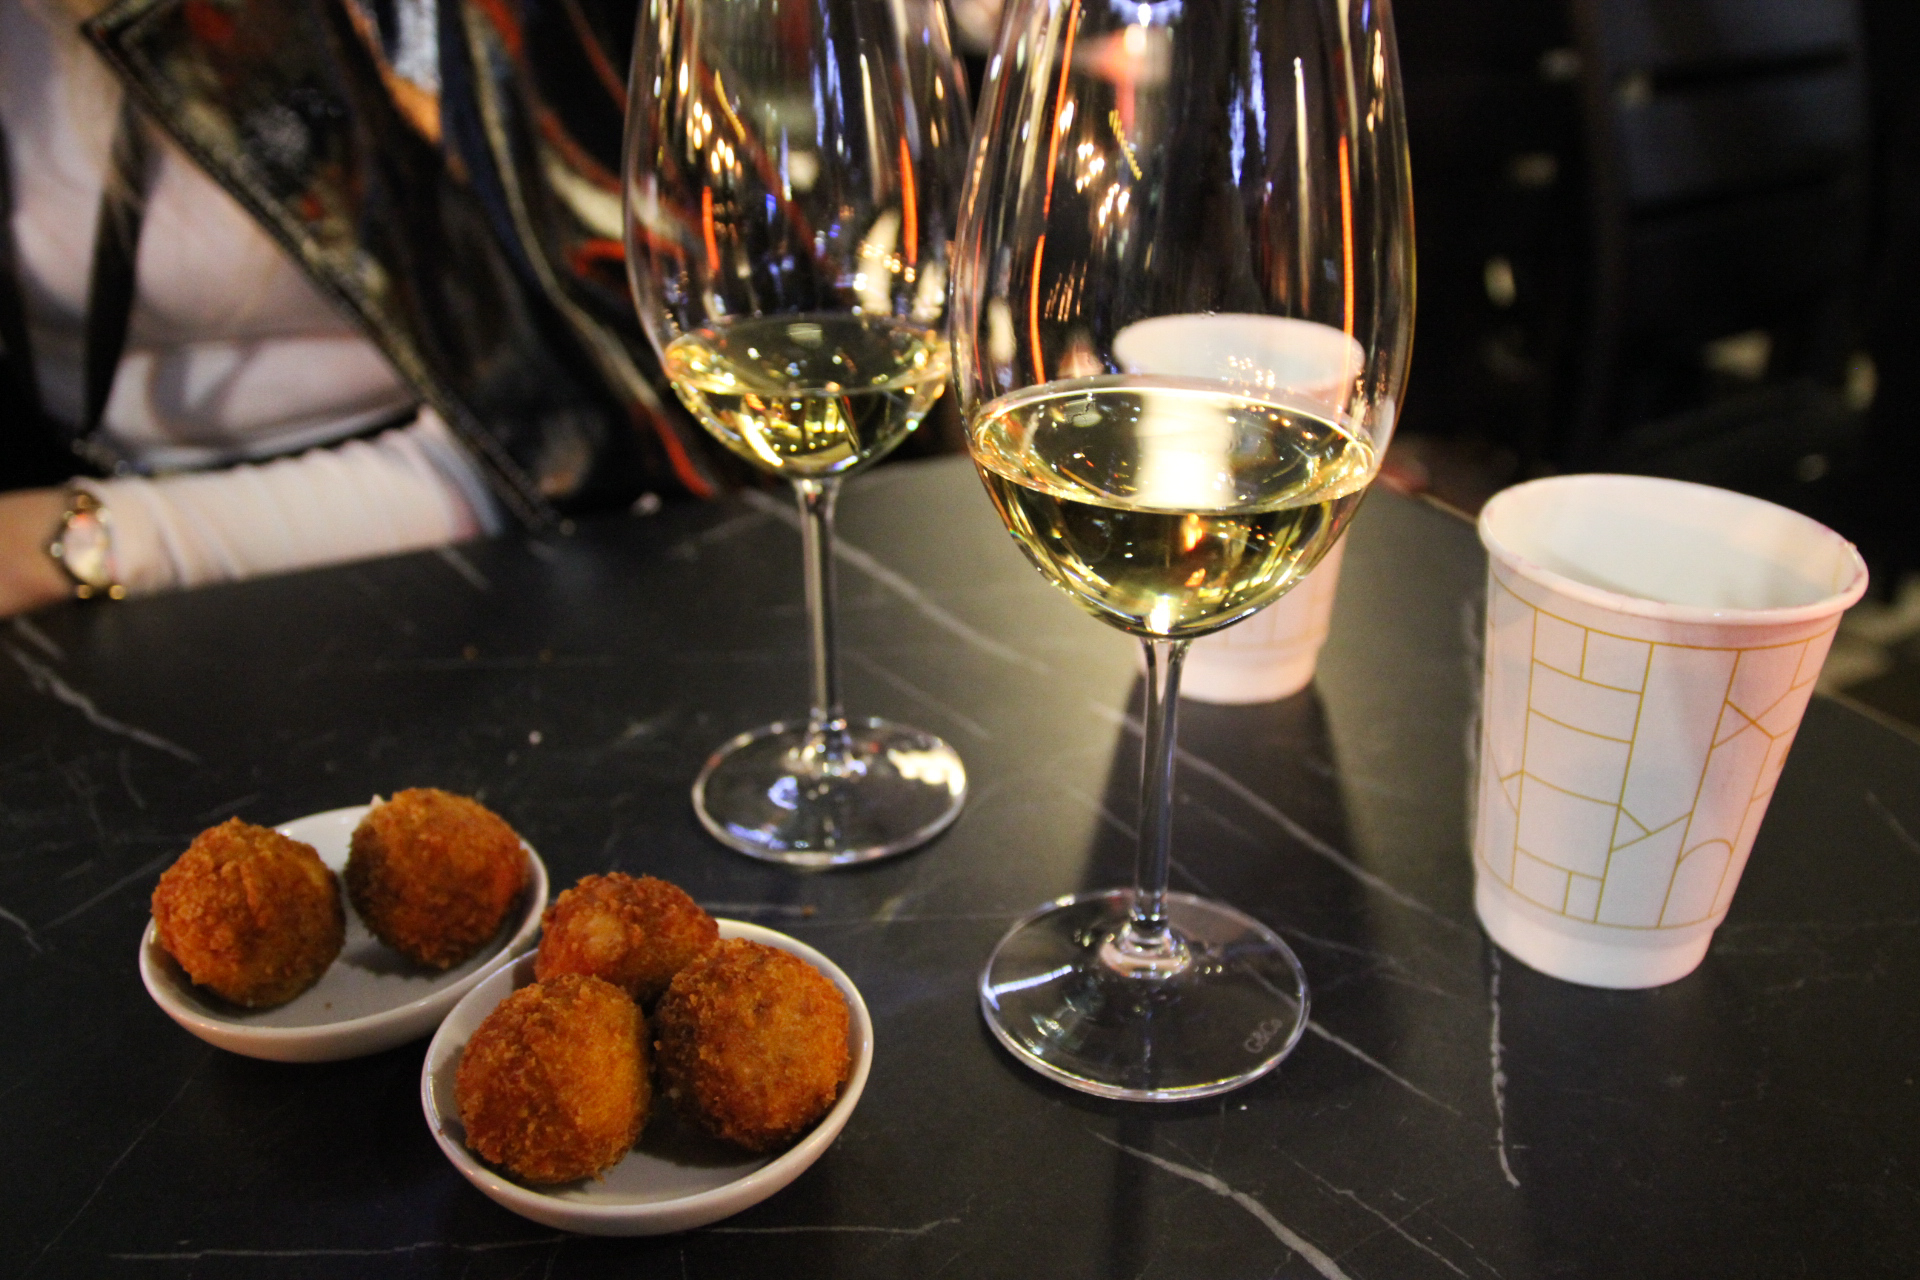 Croquettes and wine Jose Pizarro